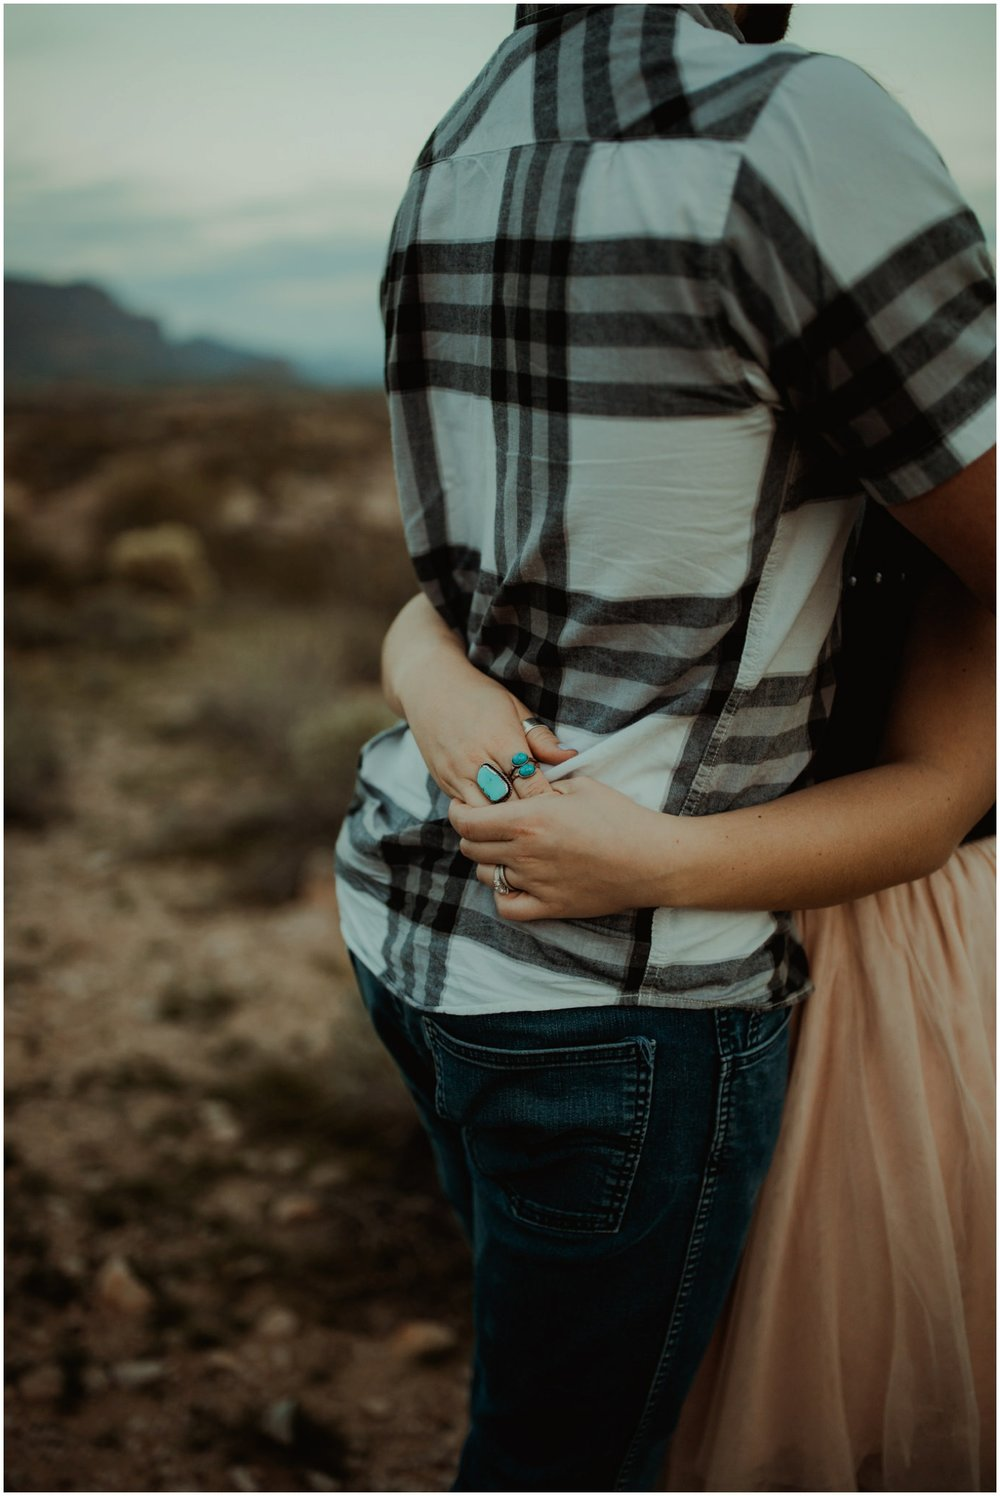 Superstition Mountain Engagement Photos // Arizona Desert Engagement // Wraps her arms around his waist.